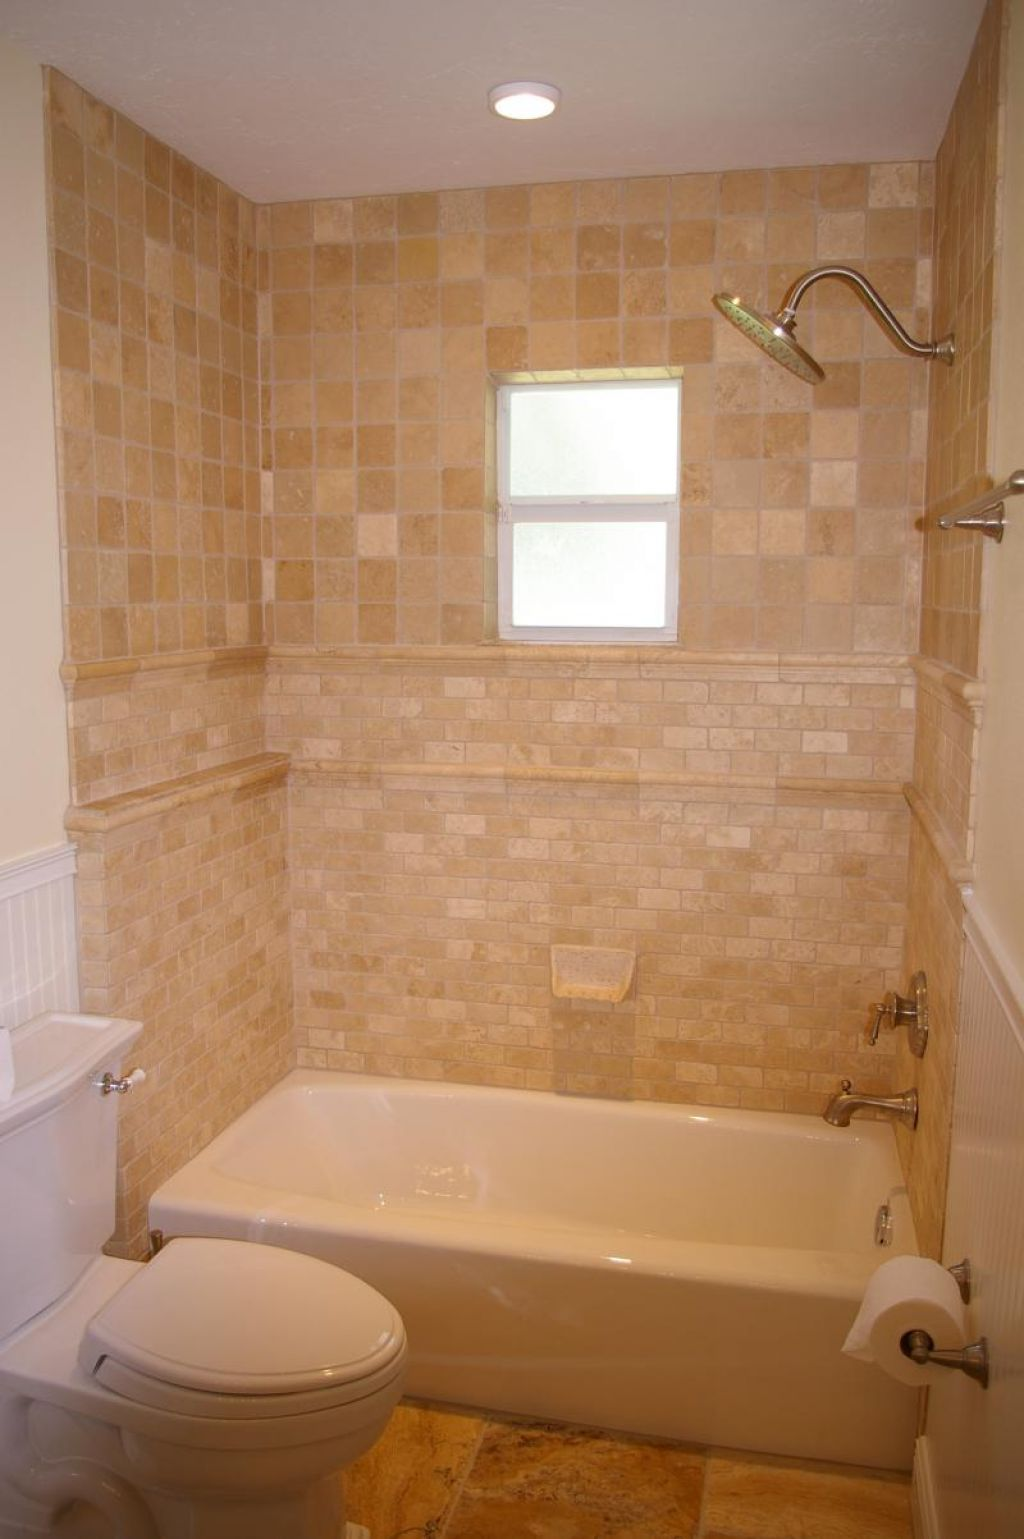 30 shower tile ideas on a budget for Design ideas for a small bathroom remodel